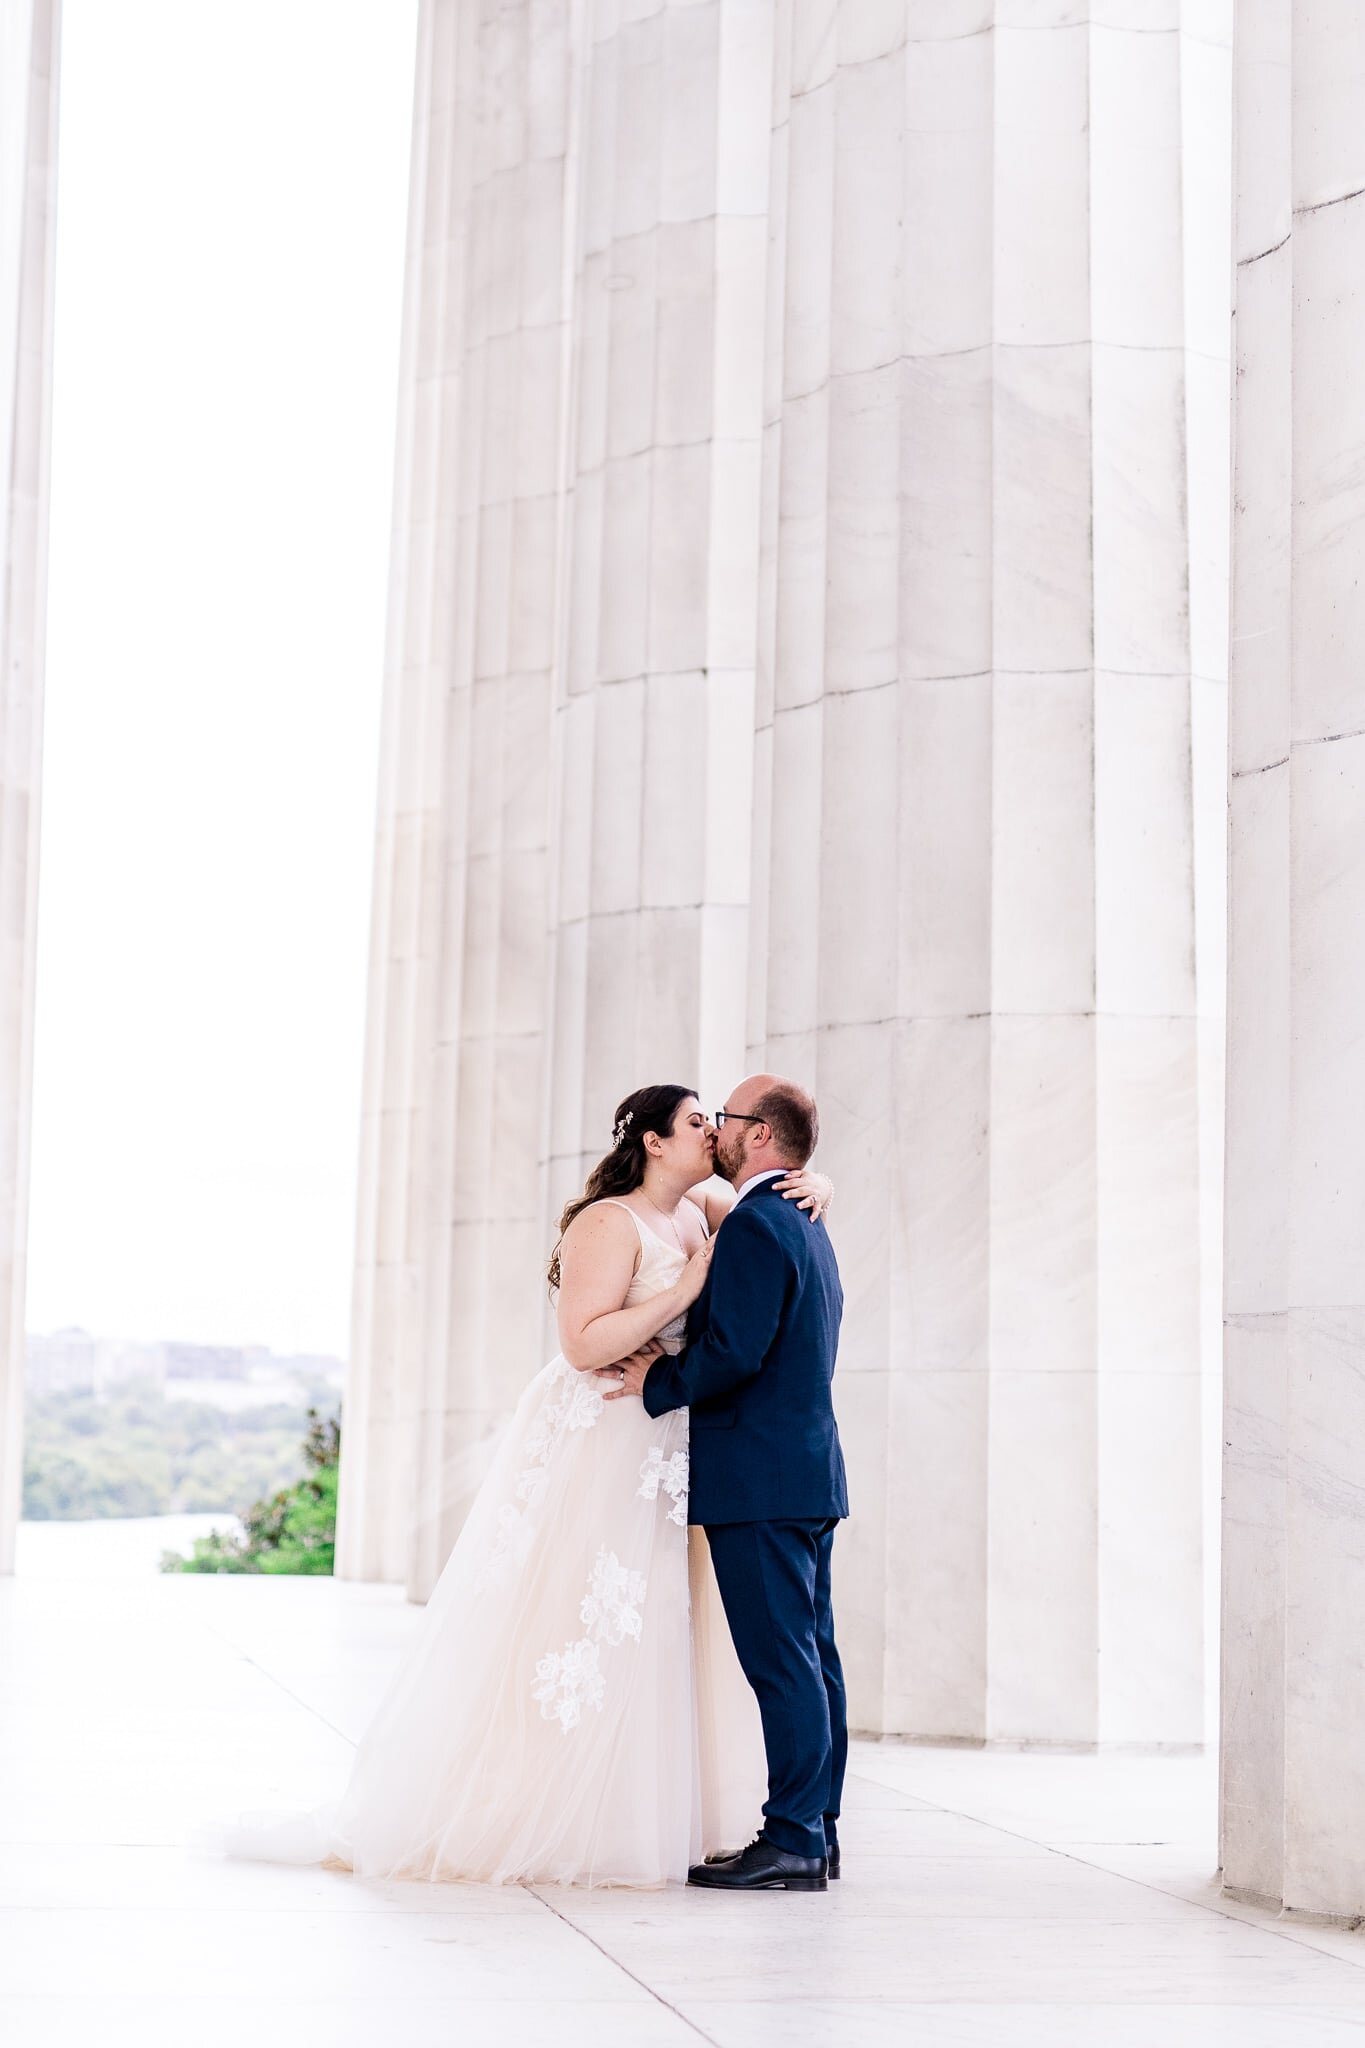 A bride and groom dance together and share a kiss on their wedding day at the Lincoln Memorial in Washington, DC